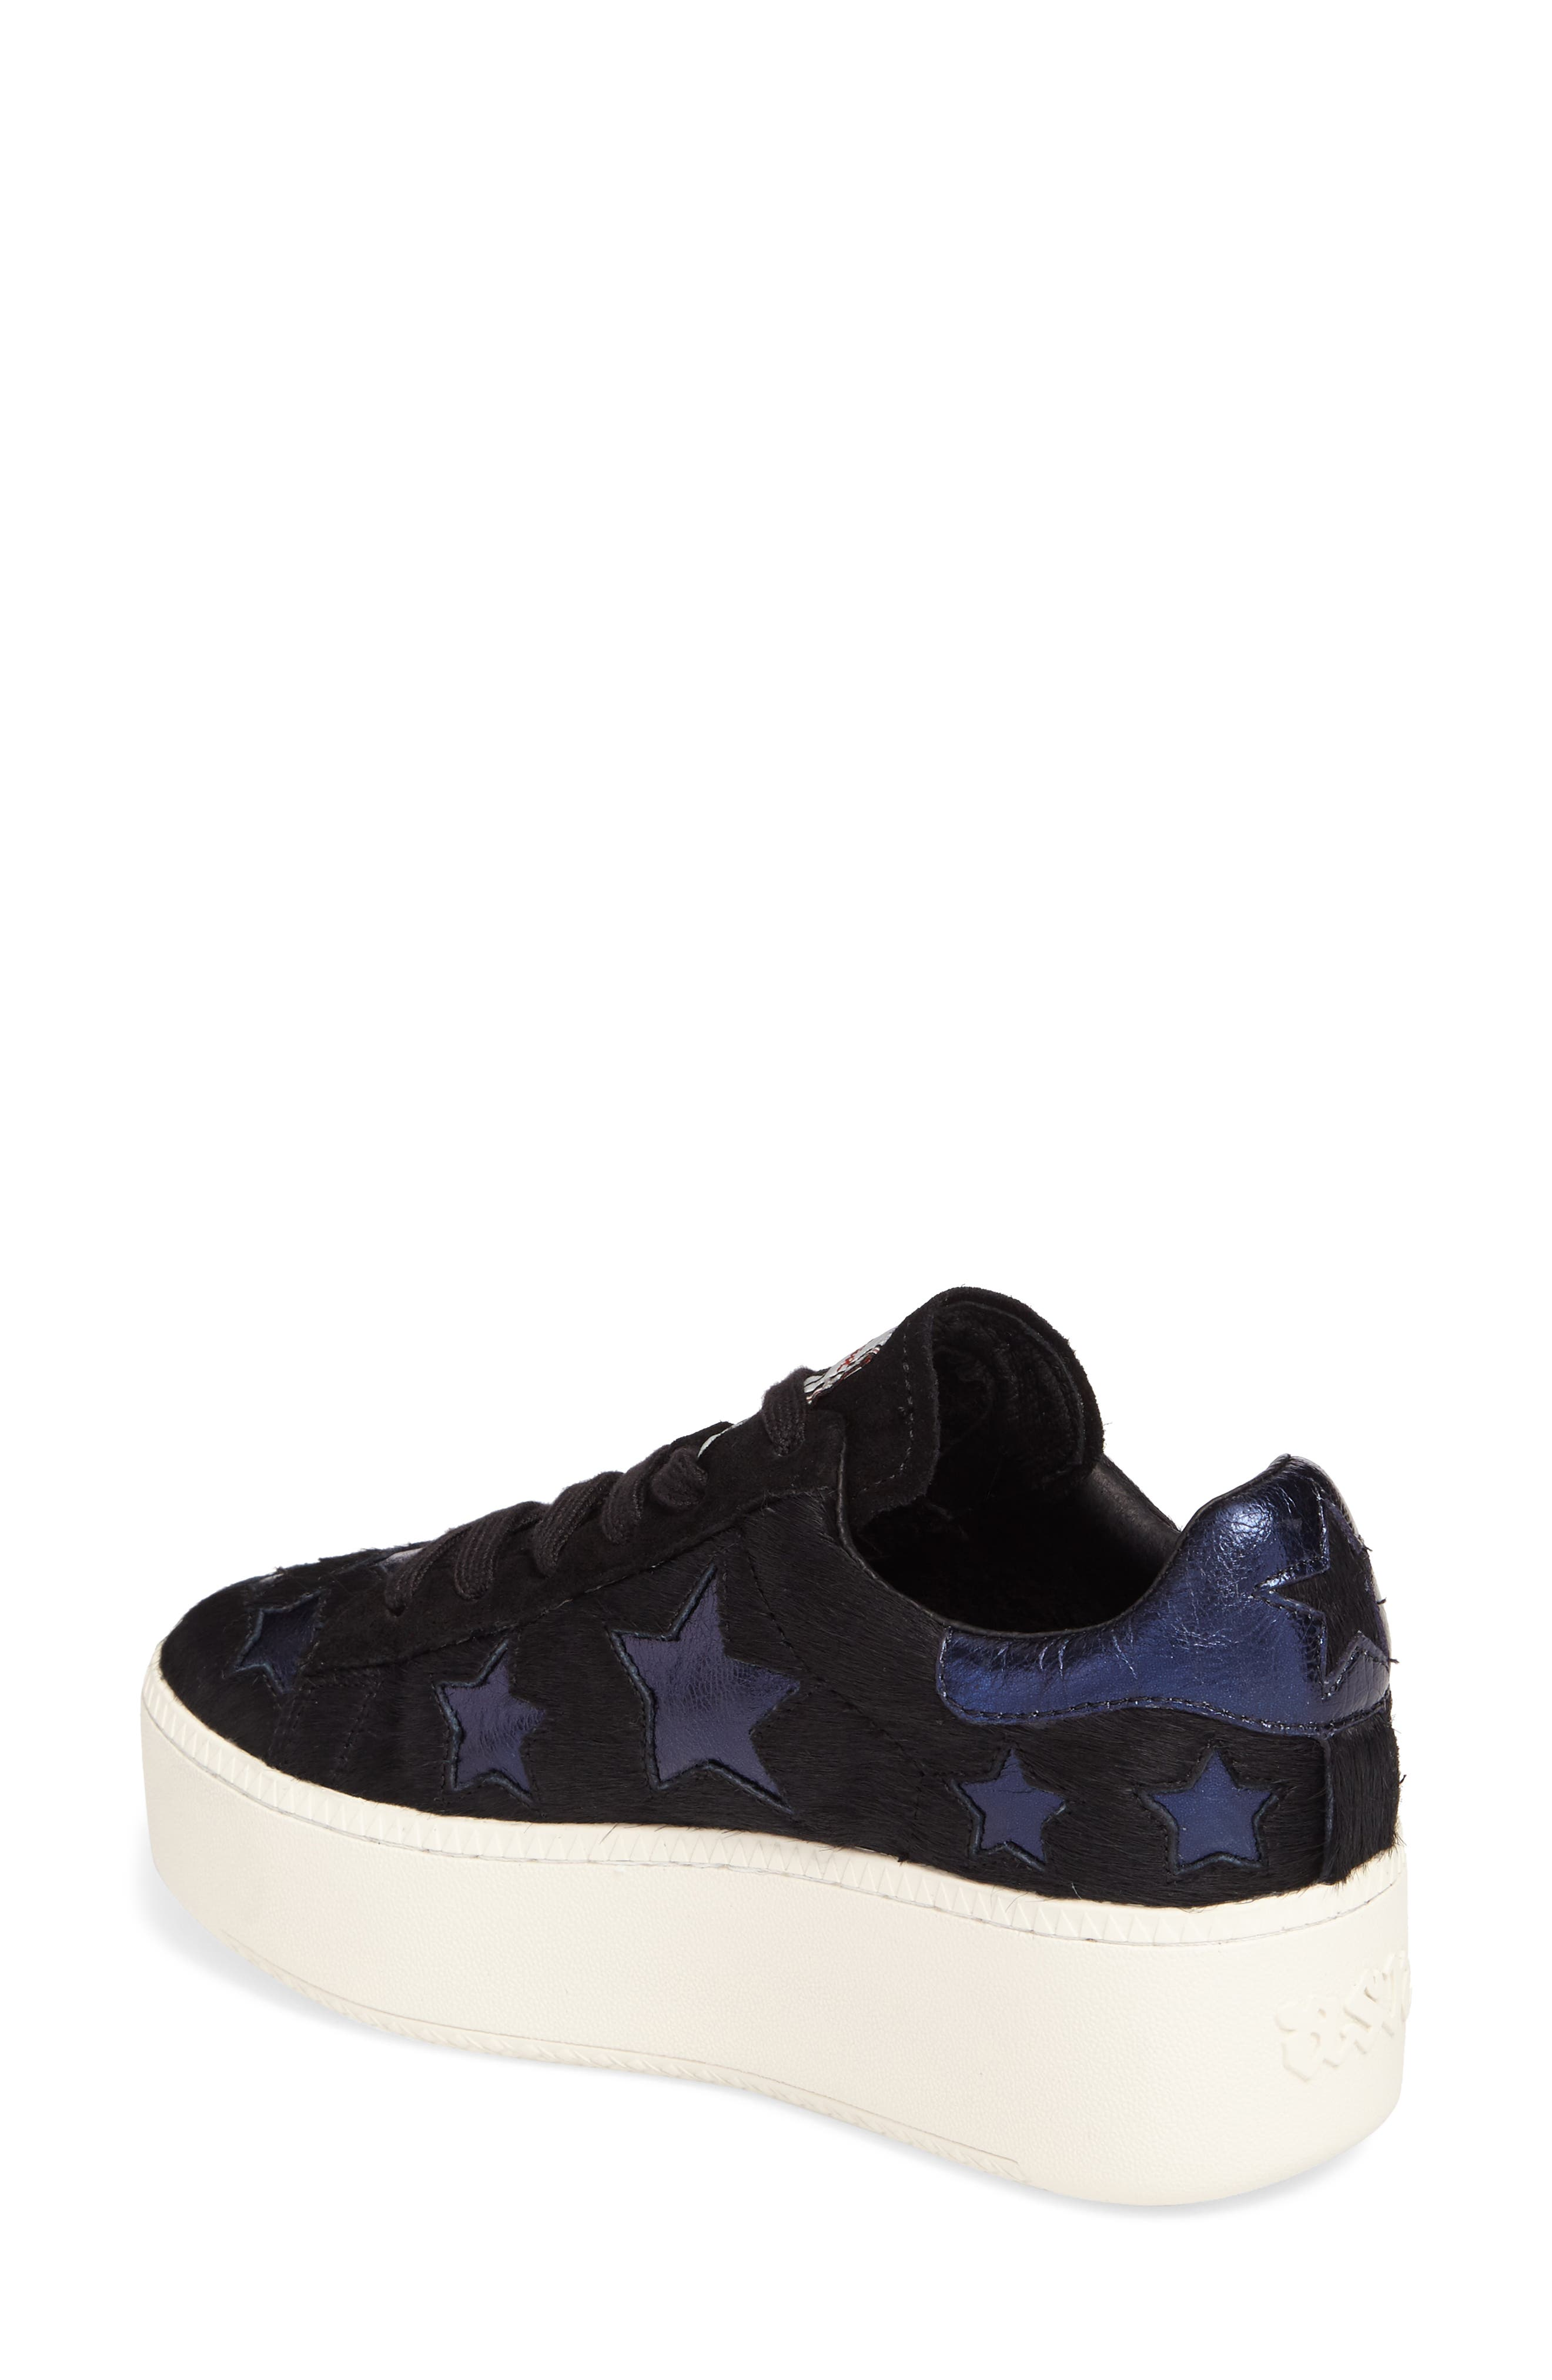 Cult Star Calf Hair Sneaker,                             Alternate thumbnail 2, color,                             Black/ Midnight Leather